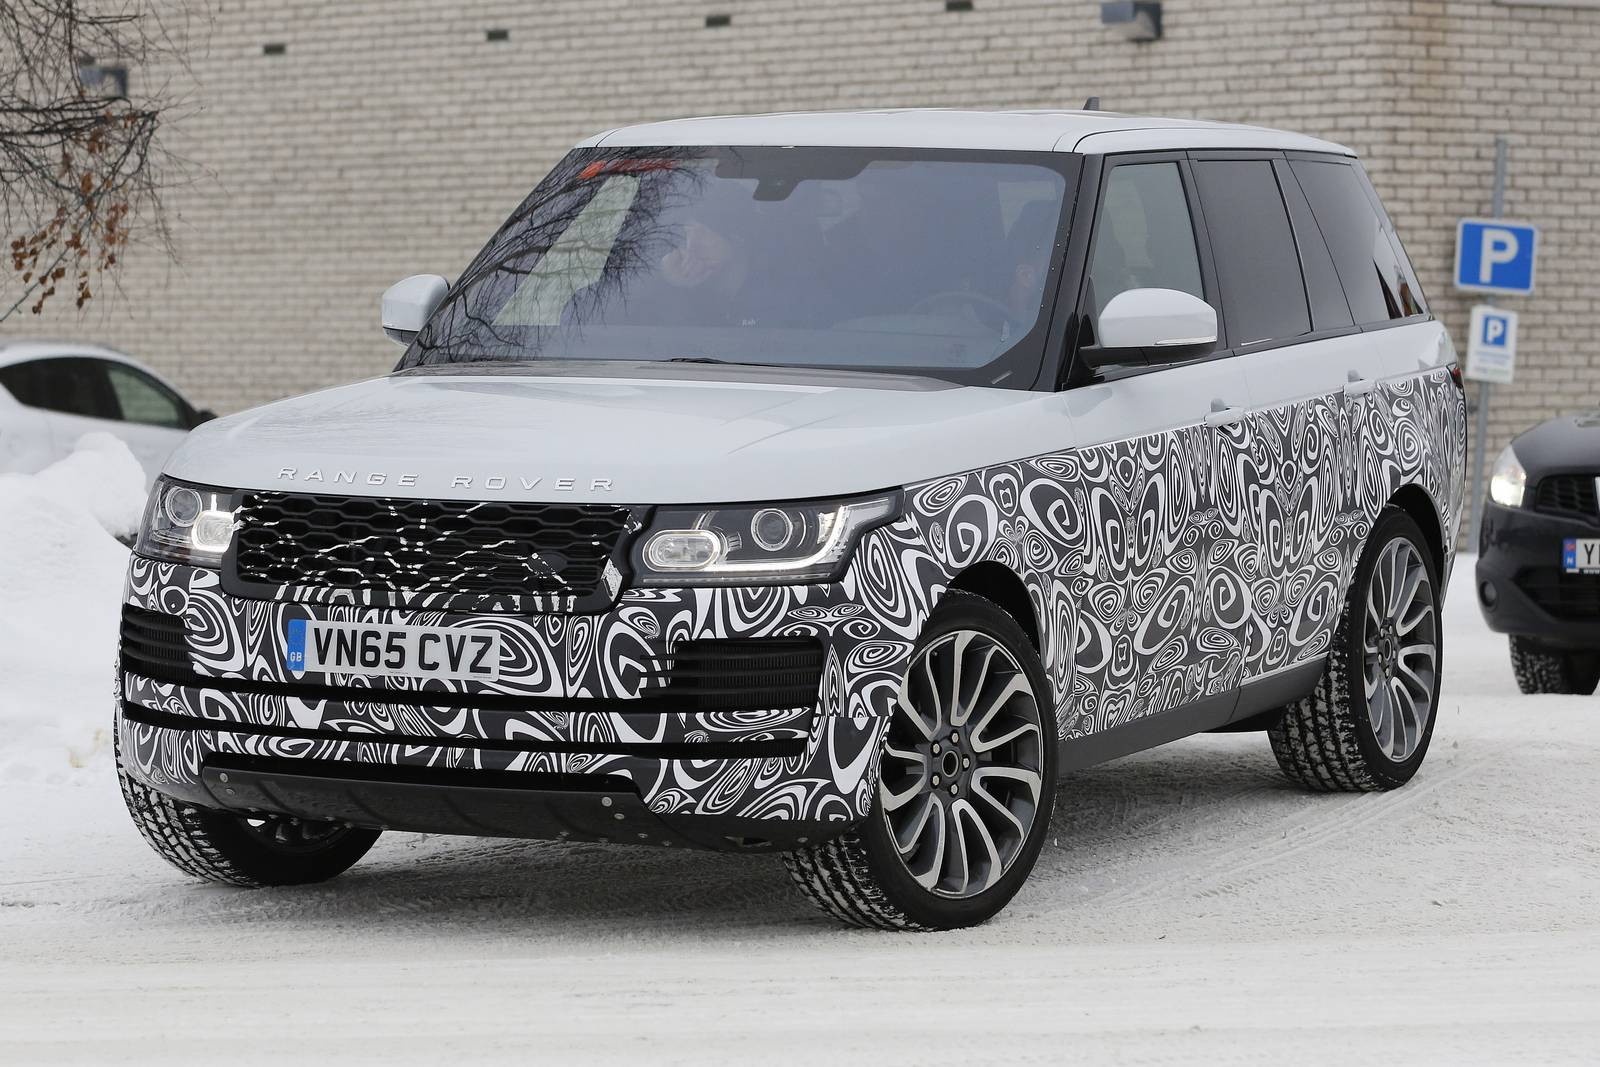 2017 range rover facelift spy shots gtspirit. Black Bedroom Furniture Sets. Home Design Ideas